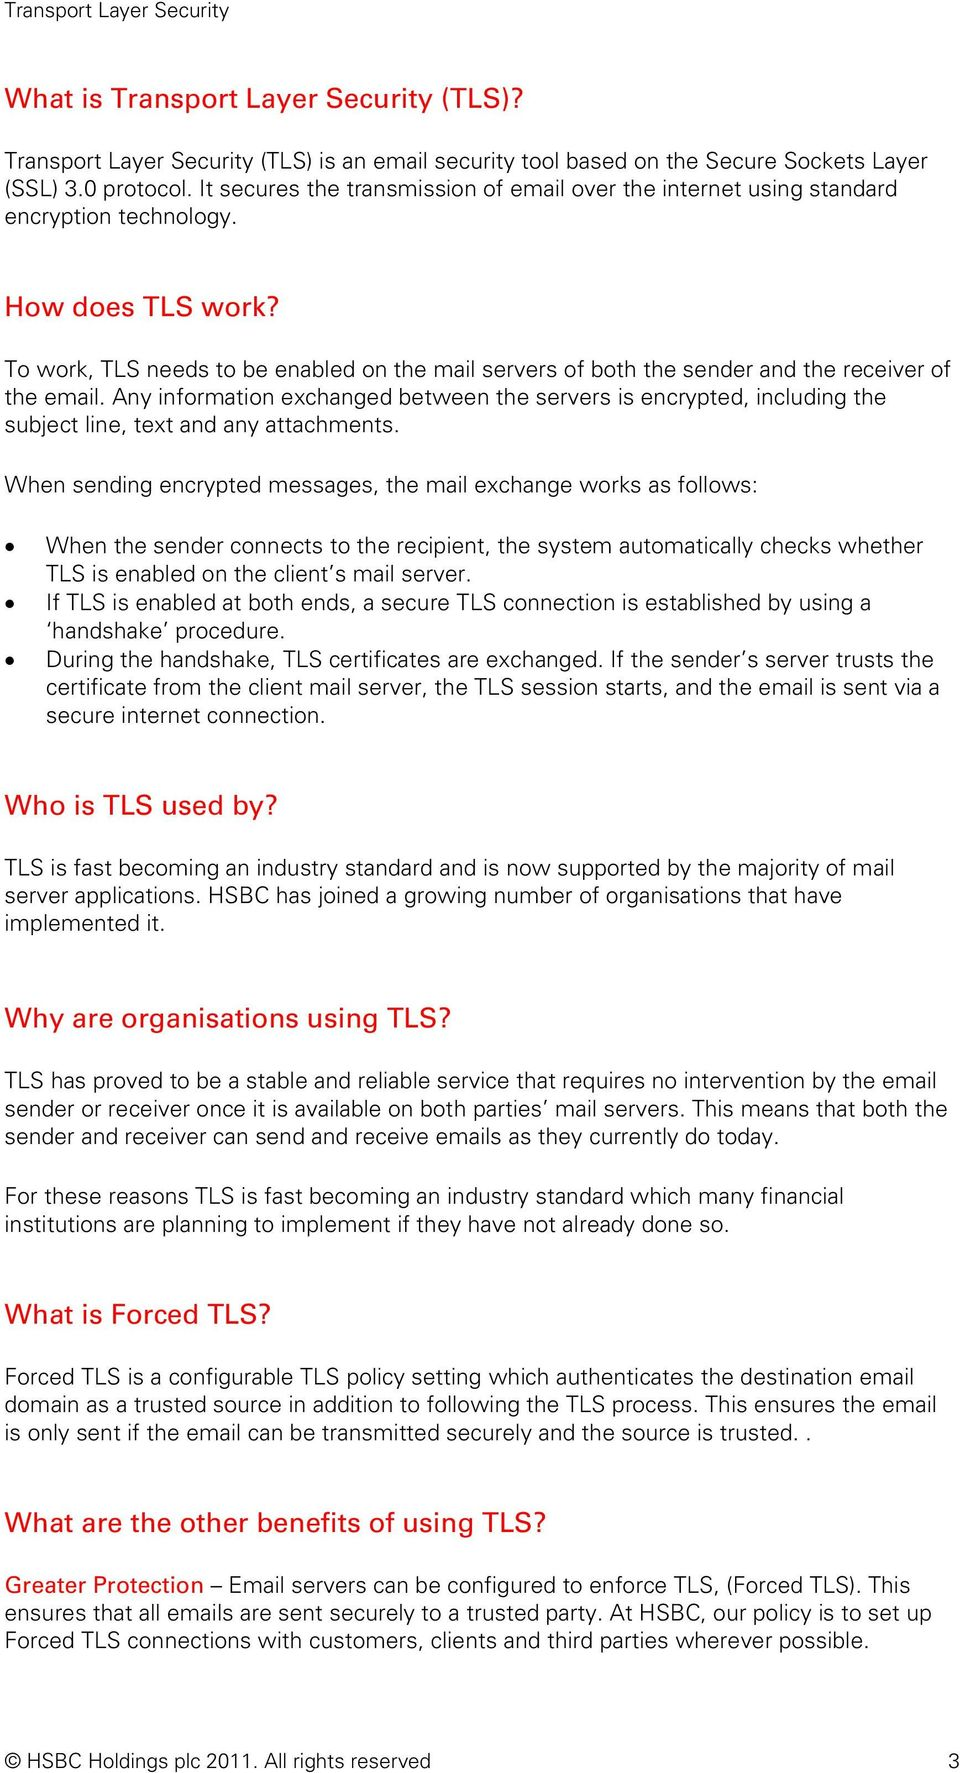 To work, TLS needs to be enabled on the mail servers of both the sender and the receiver of the email.